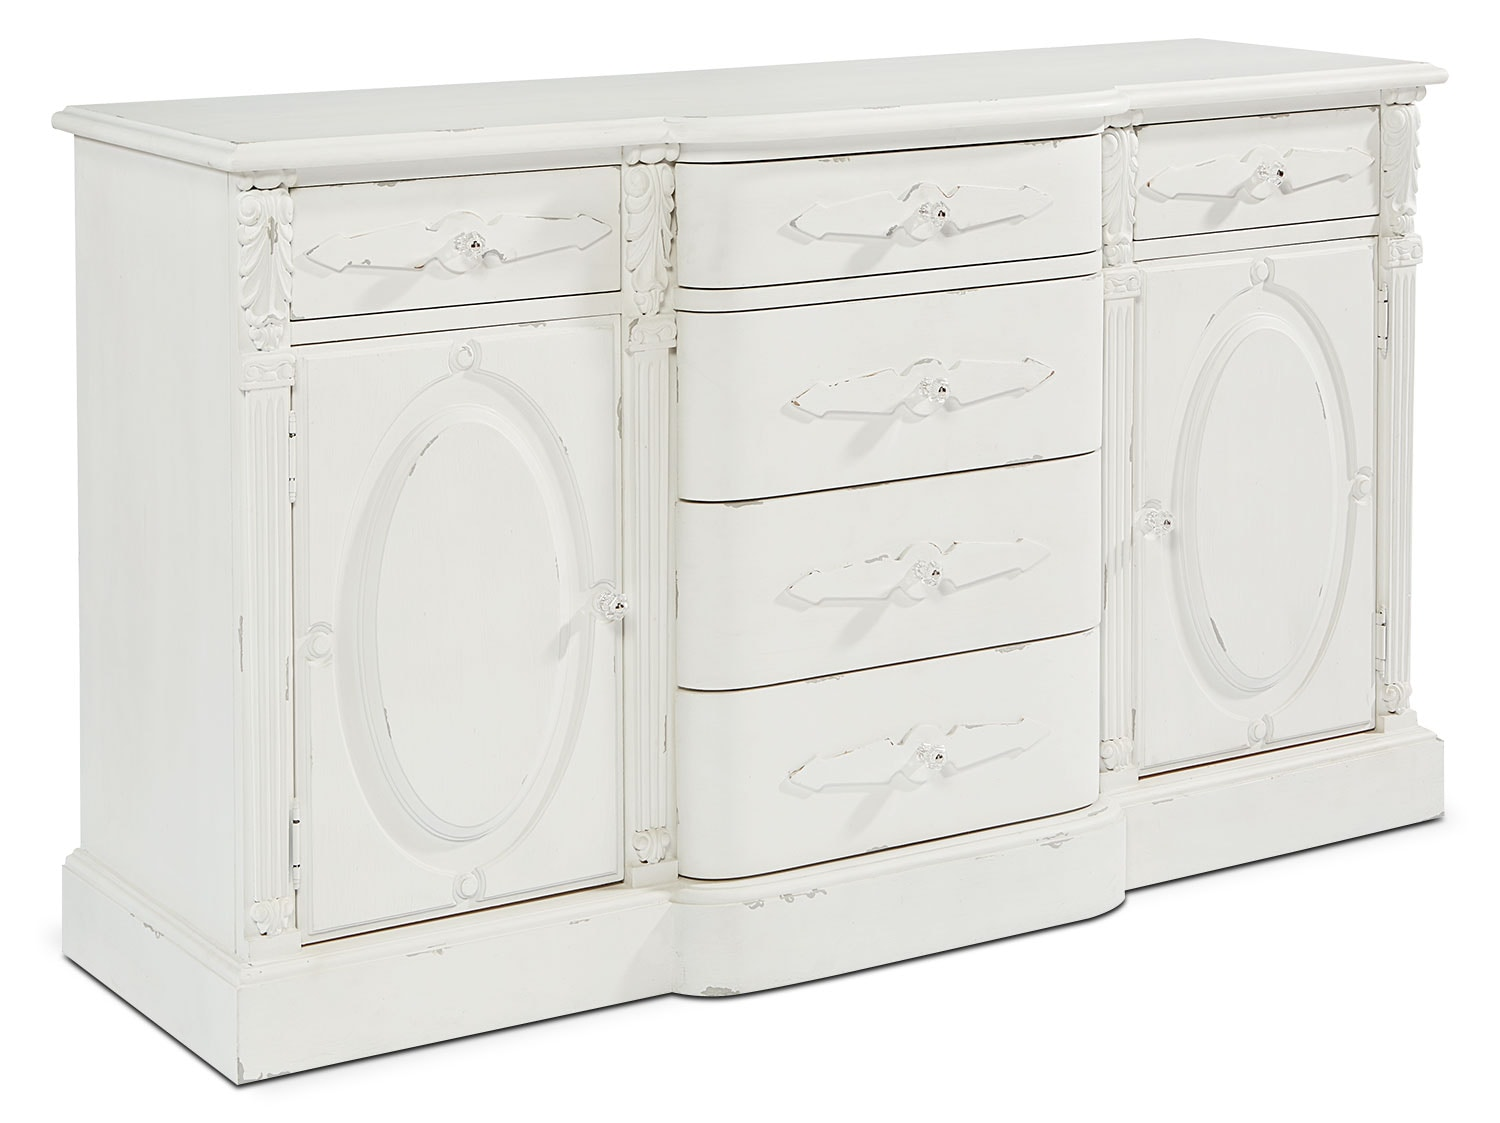 Dining Room Furniture - French-Inspired Cameo Buffet